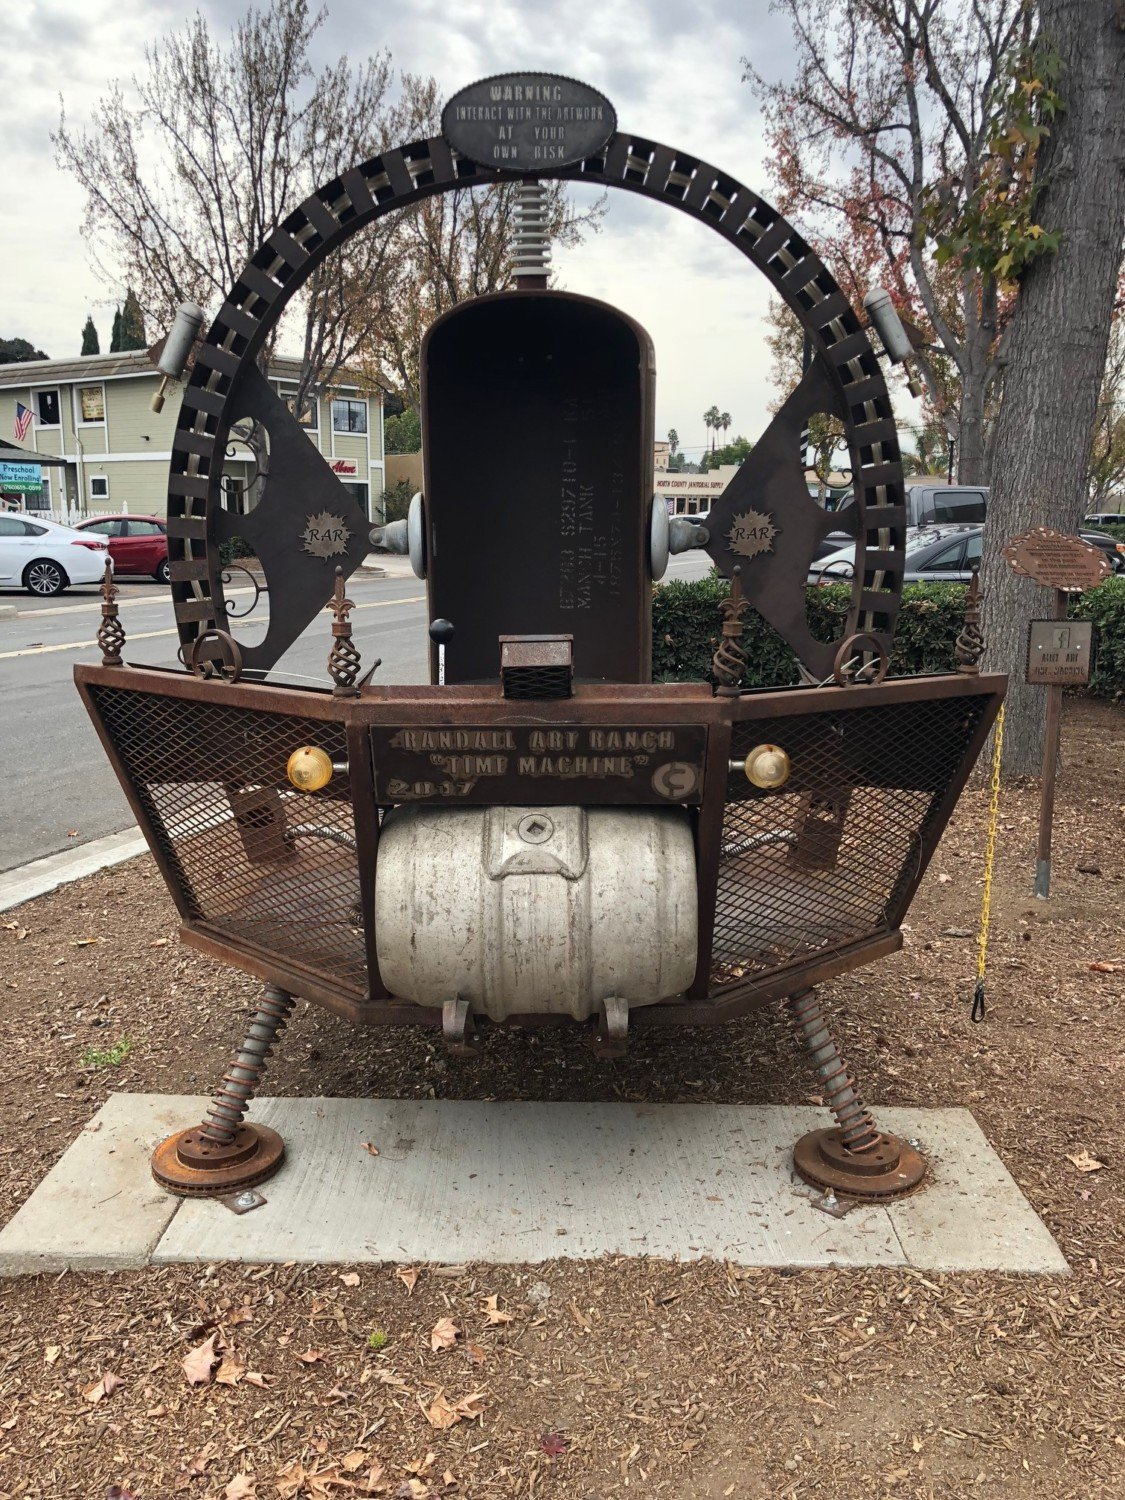 Time Machine sculpture stays put